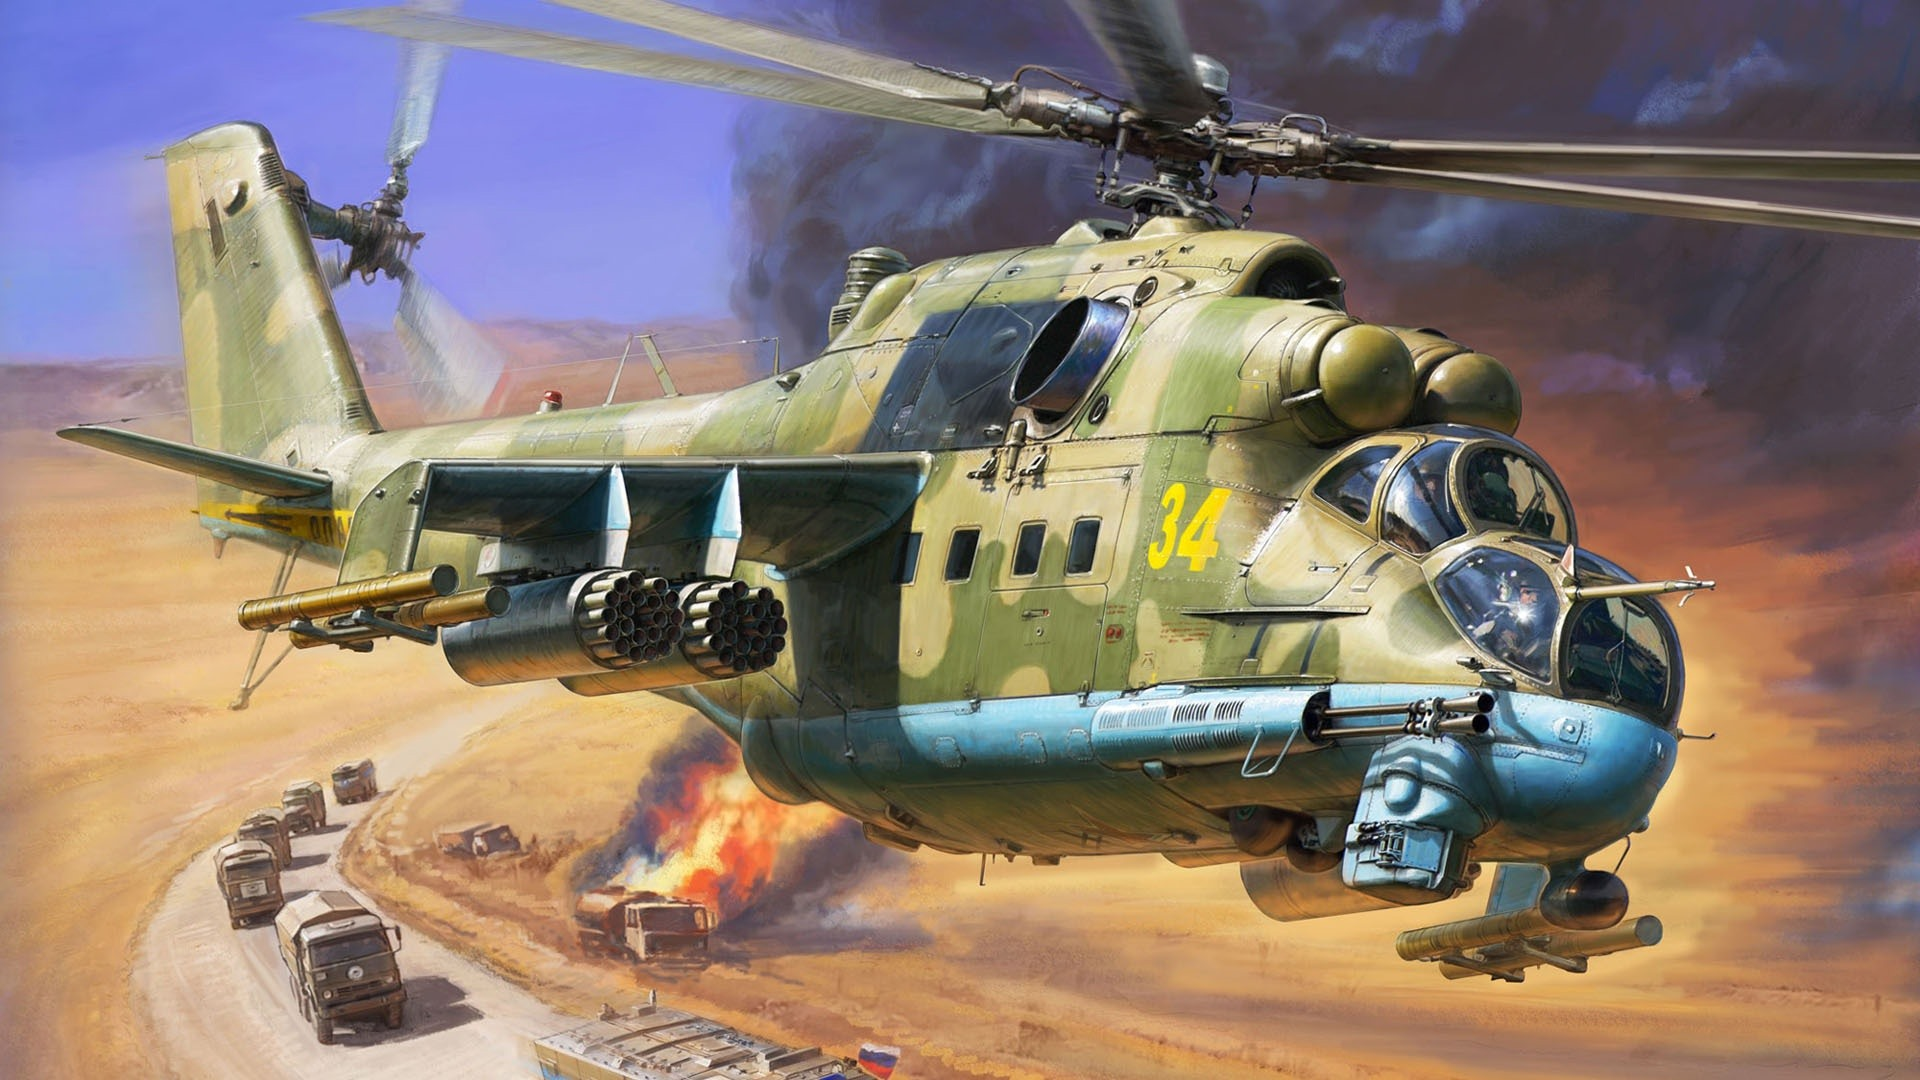 Wallpaper Helicopter Cars Army Art Picture 1920x1080 Full